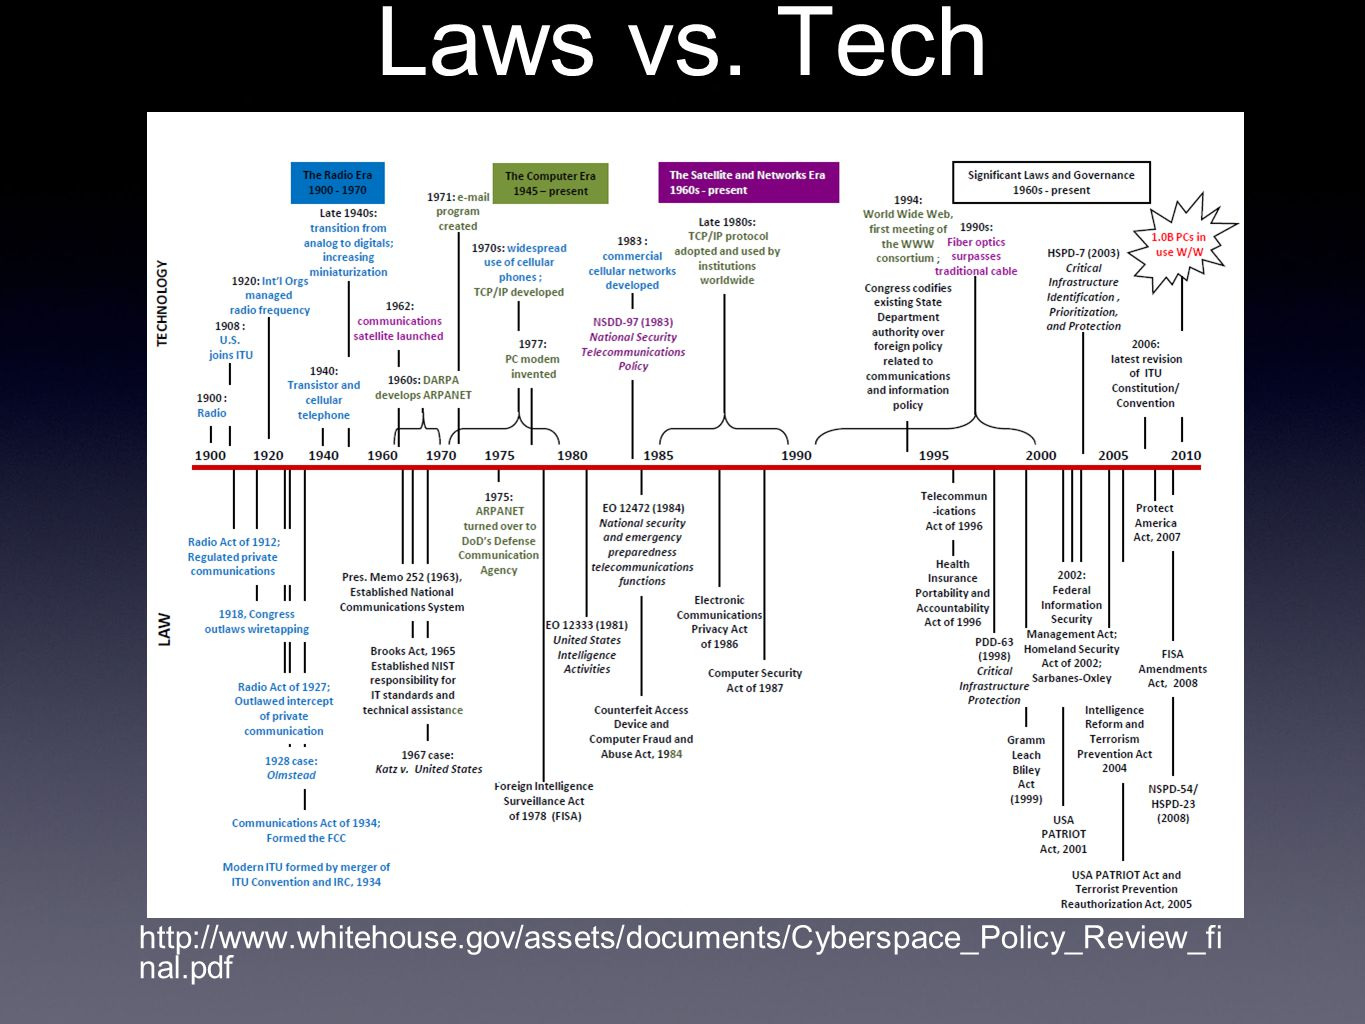 Laws vs. Tech http://www.whitehouse.gov/assets/documents/Cyberspace_Policy_Review_fi nal.pdf